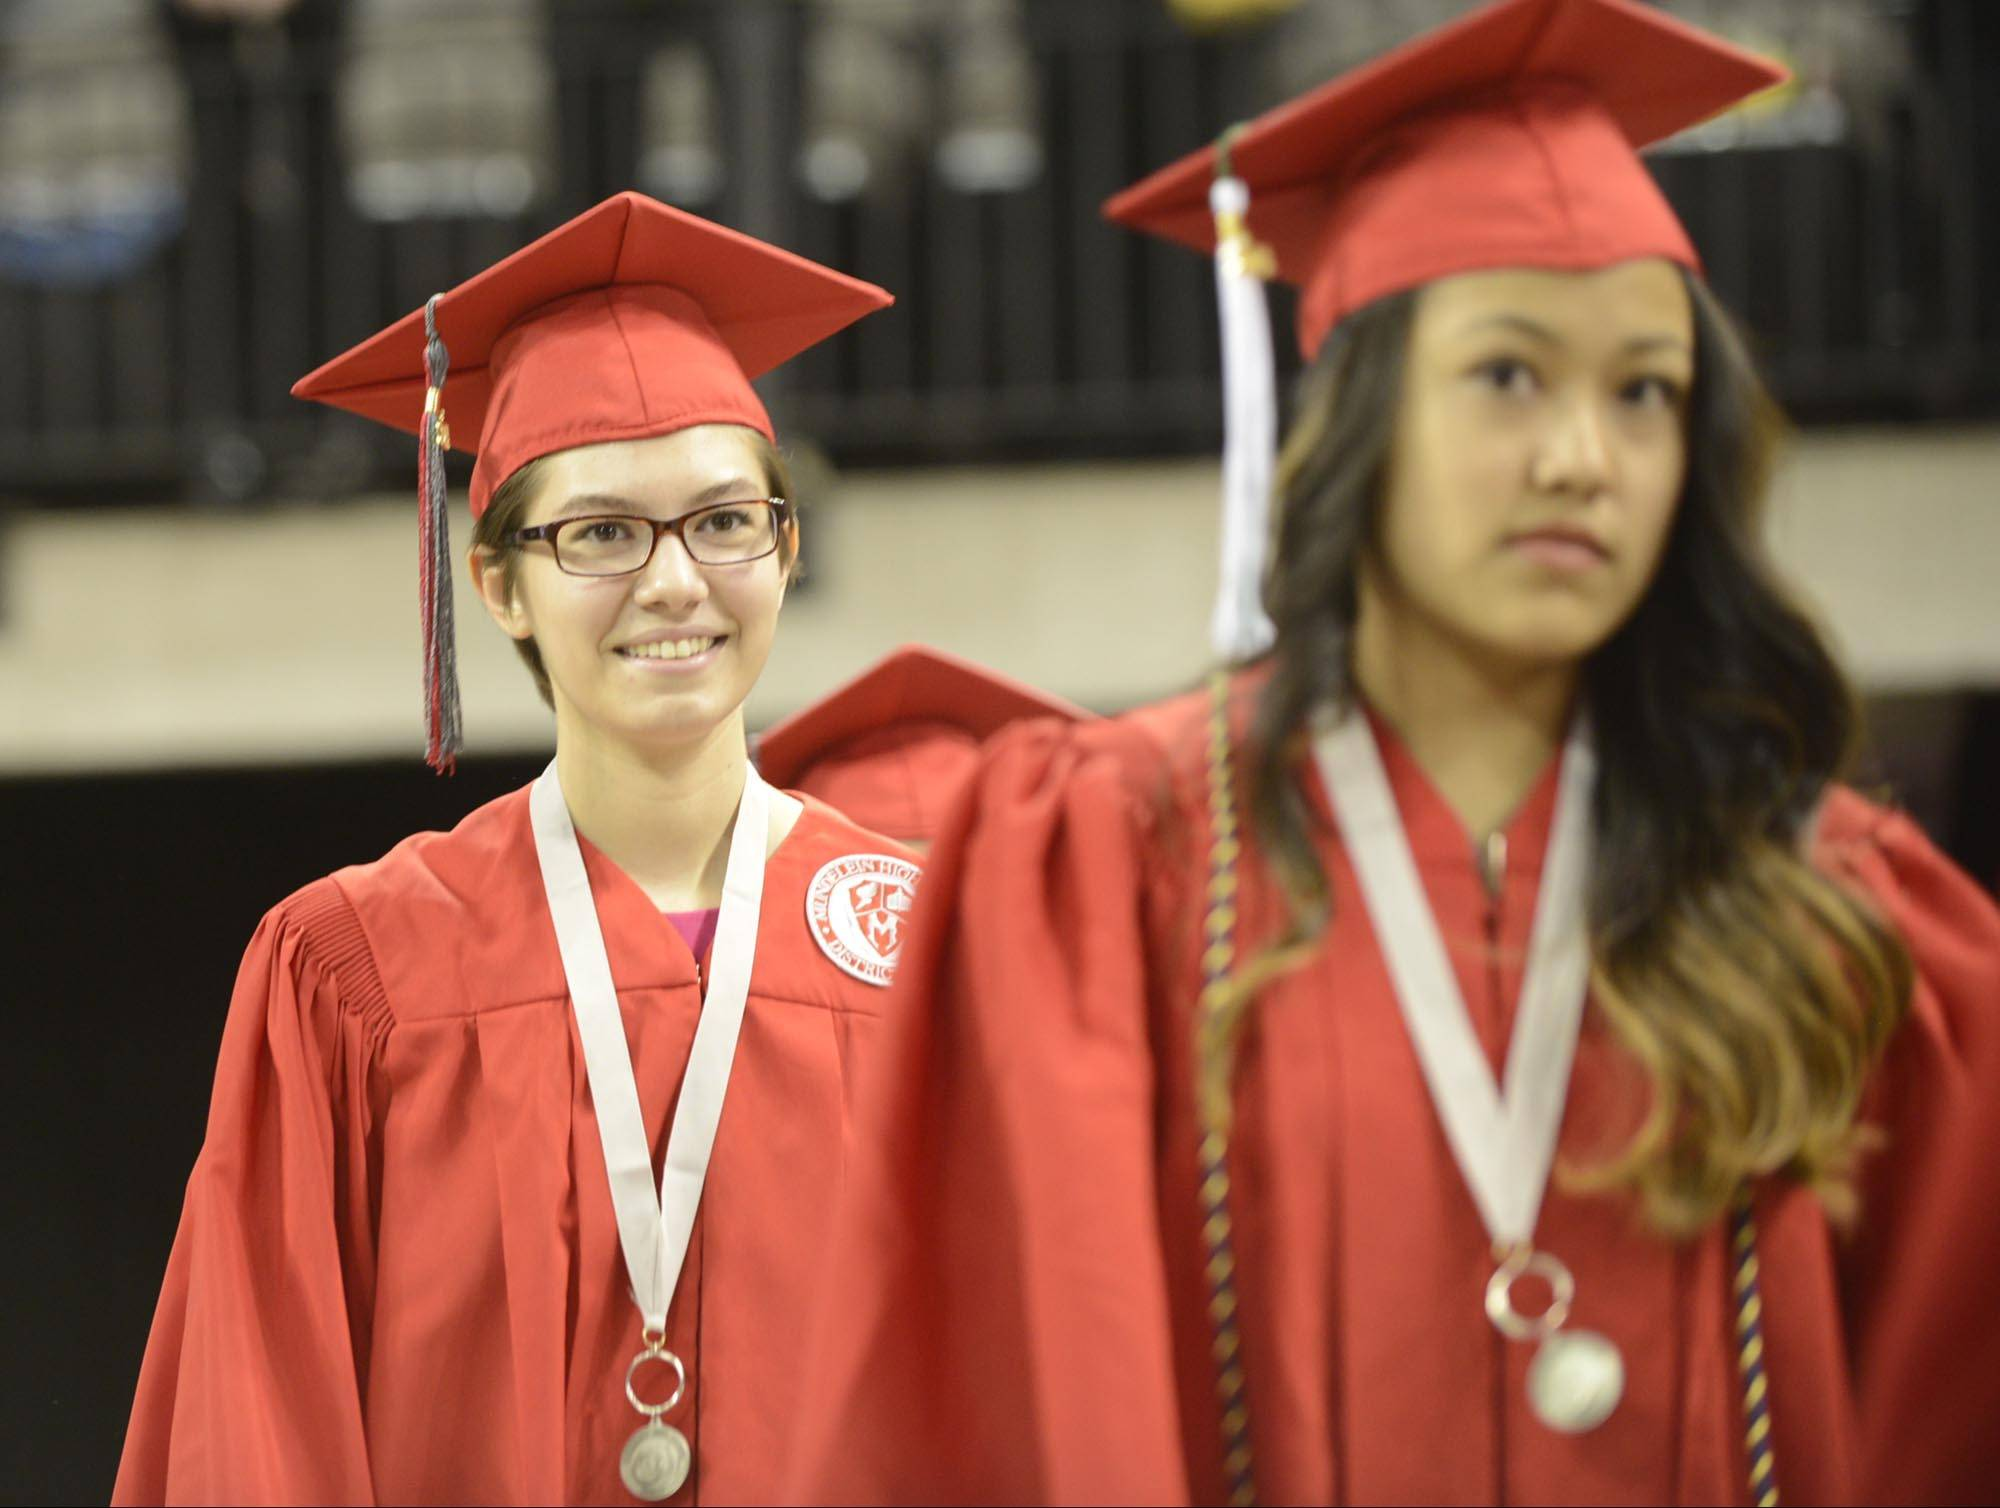 Images from the Mundelein High School graduation on Sunday, May 18 at the Sears Centre in Hoffman Estates.